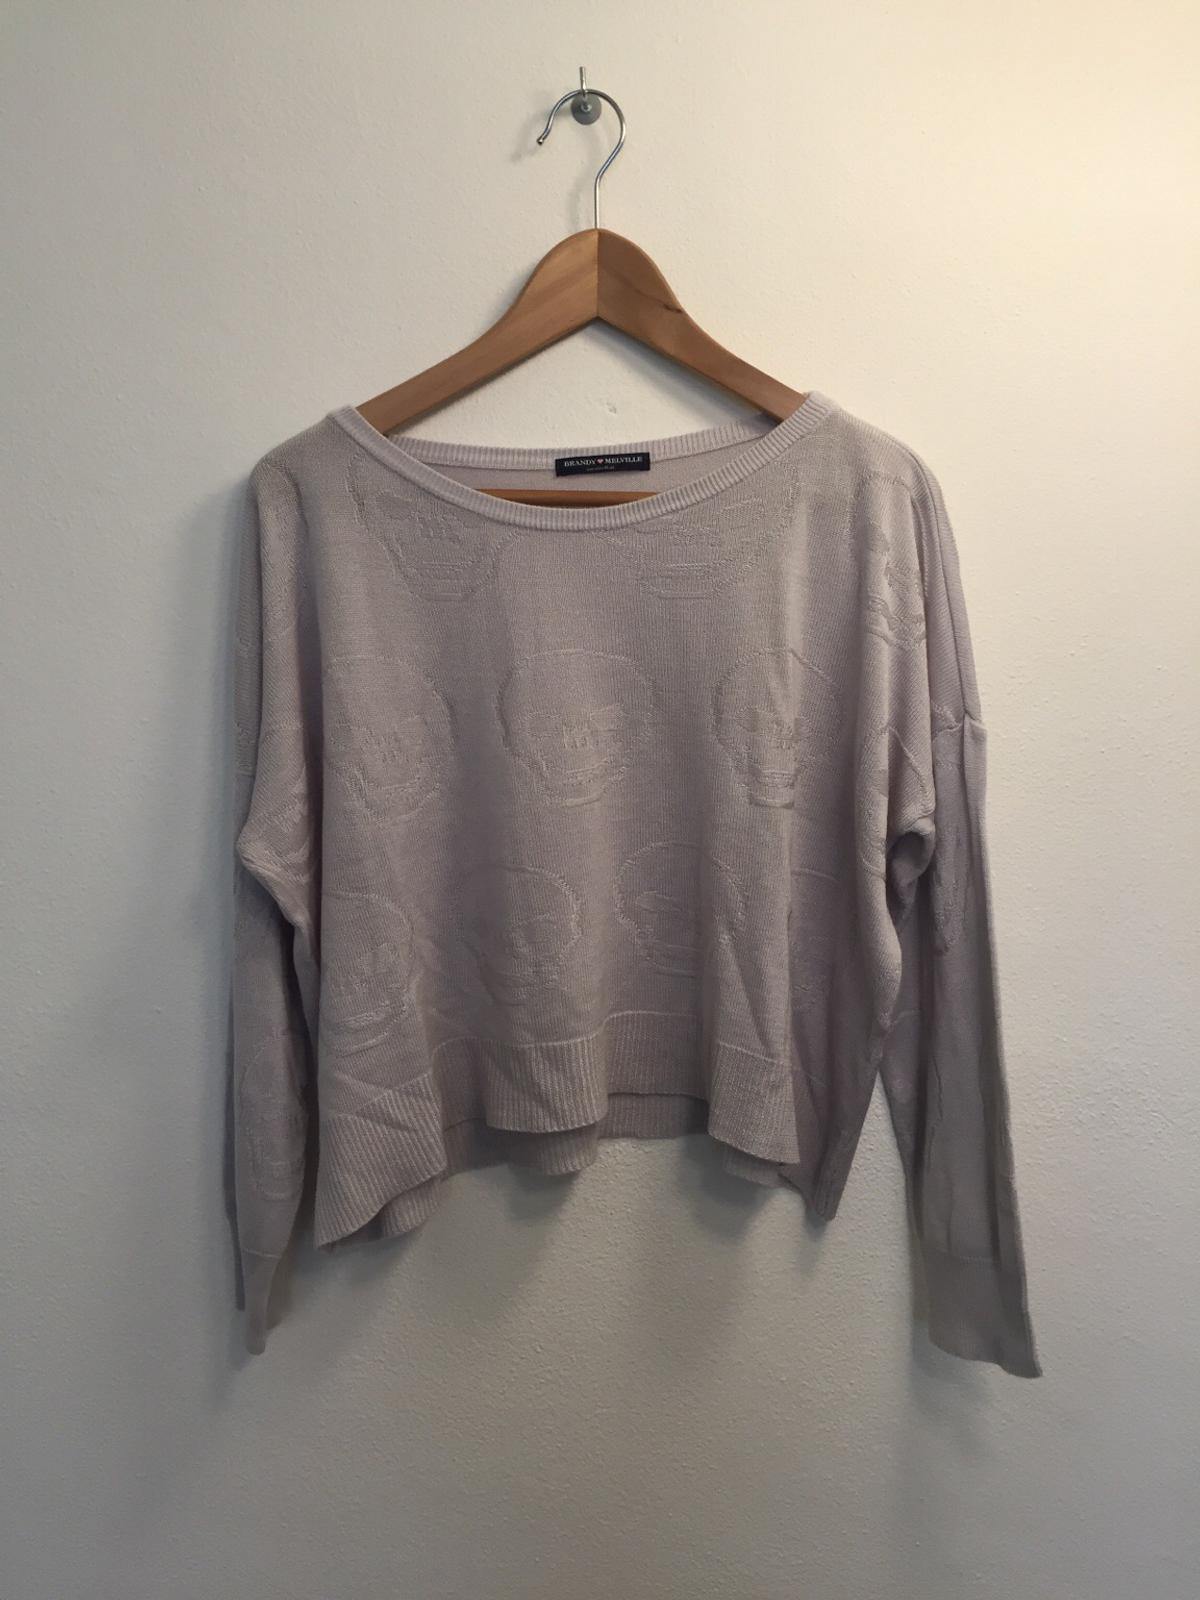 873bdc2269 BRANDY & MELVILLE. Maglione over. in 20821 Meda for €5.00 for sale ...